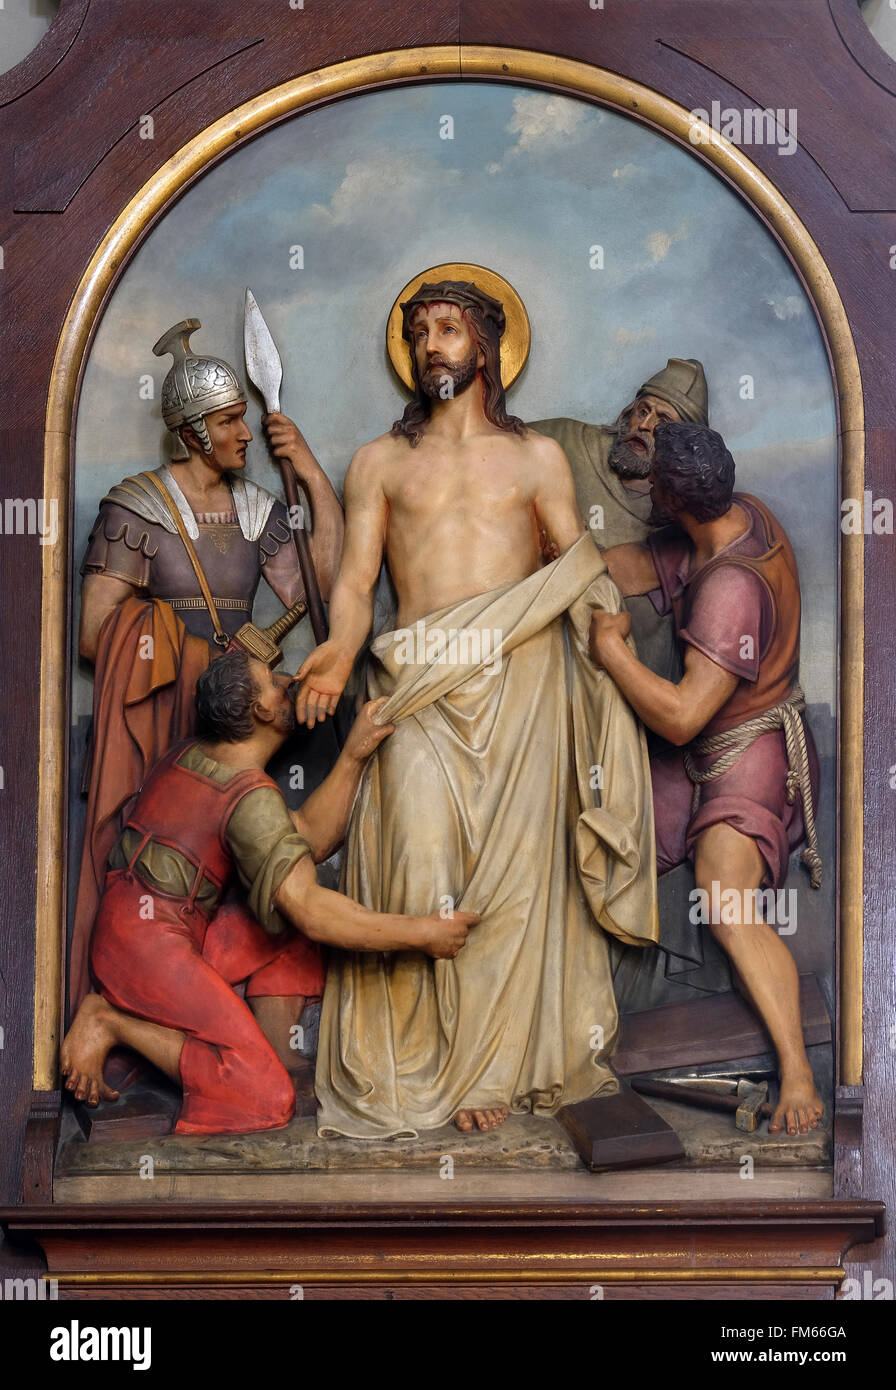 10th Stations of the Cross, Jesus is stripped of His